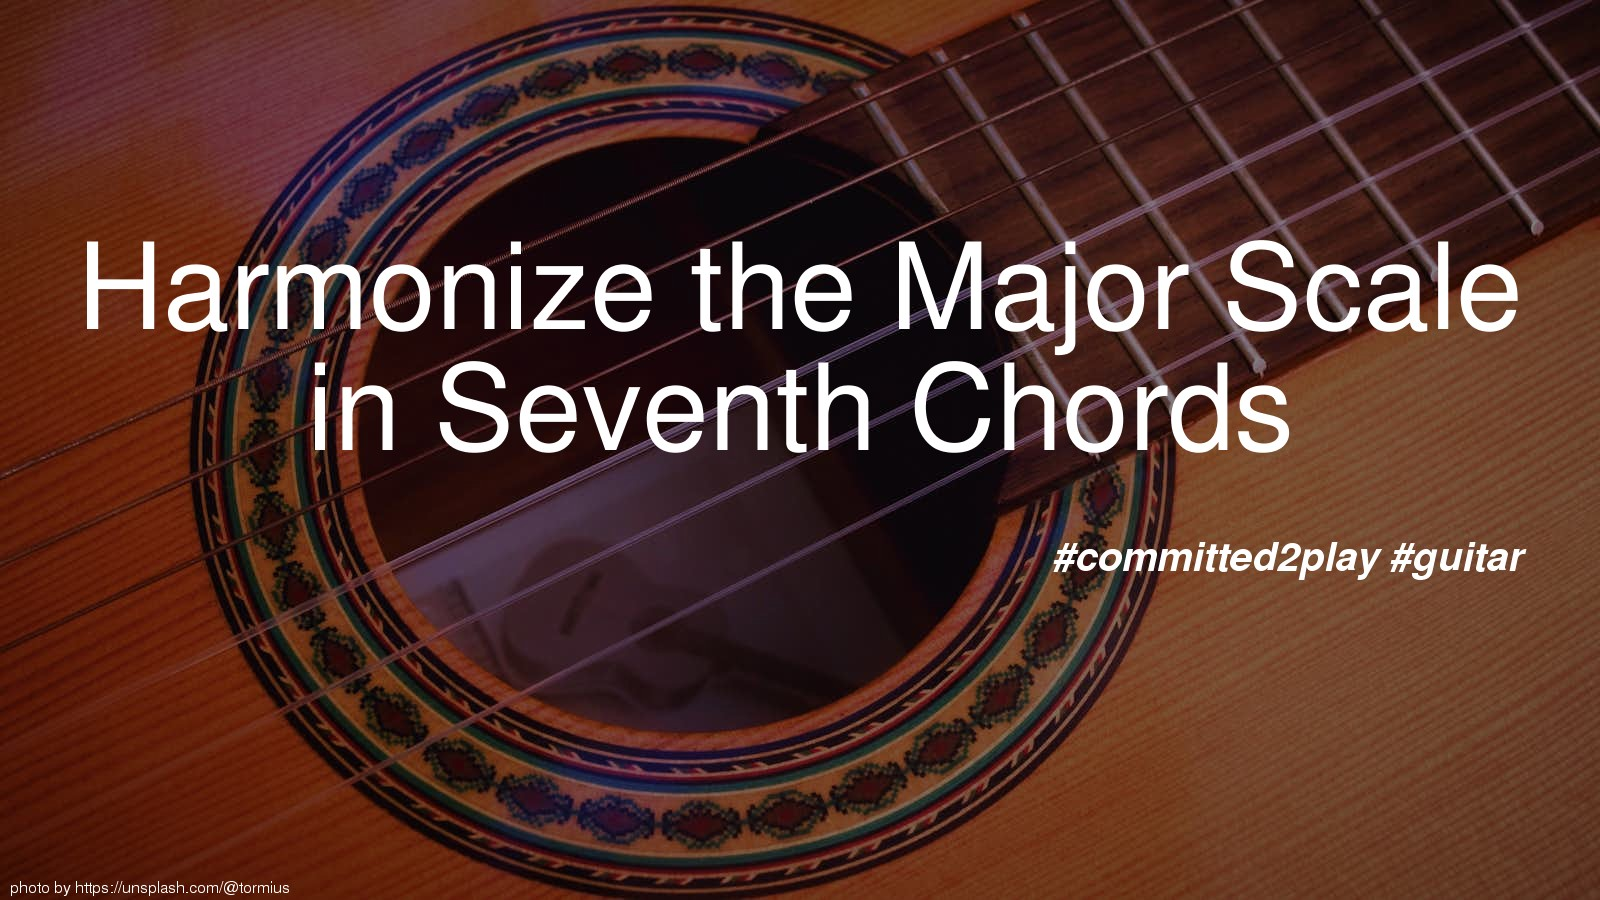 Harmonize the Major Scale in Seventh Chords